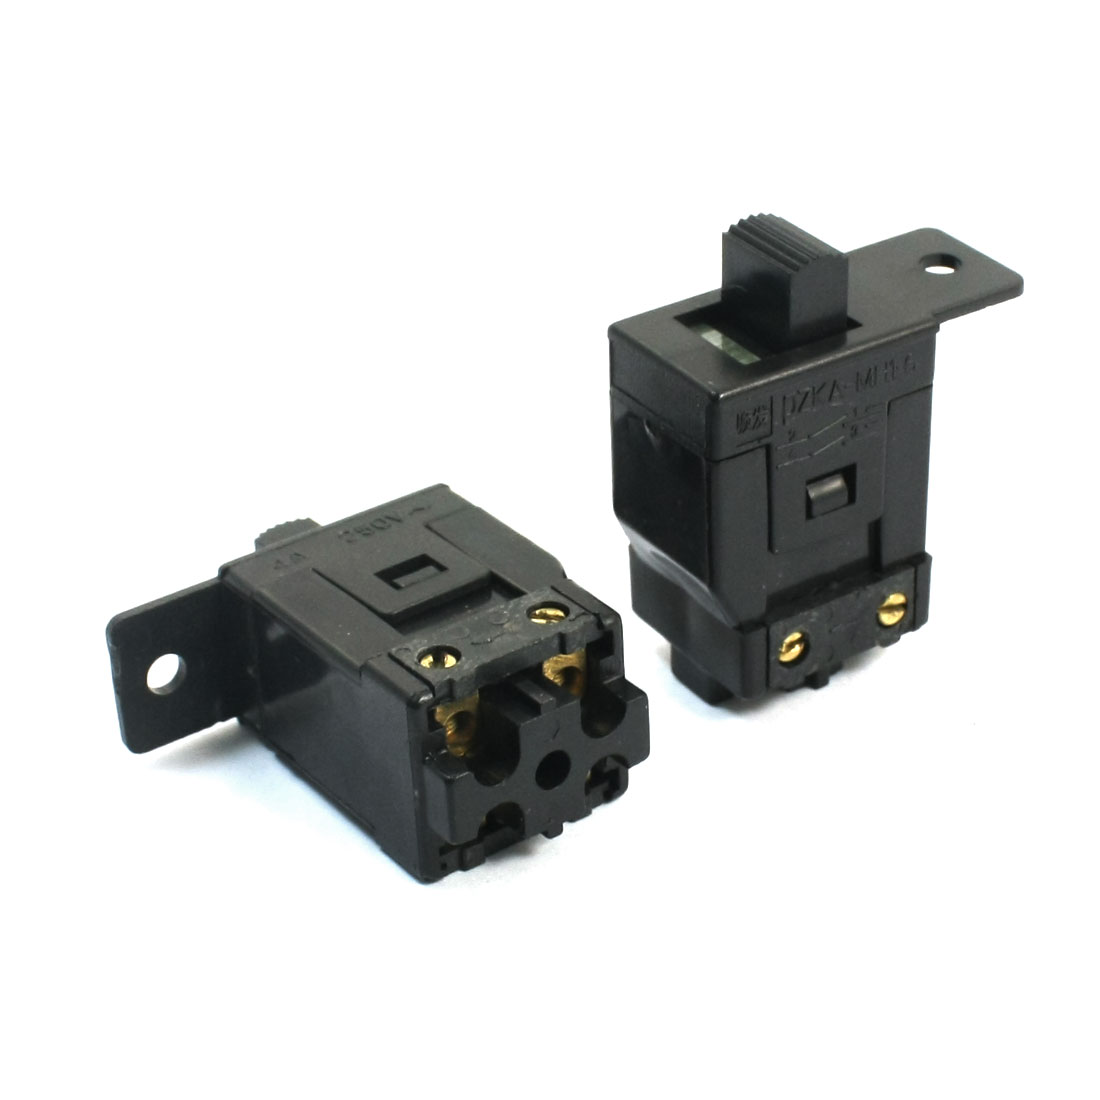 2pcs Power Tool Parts DPST Latching Switch for Dragon 100 Electric Grinder